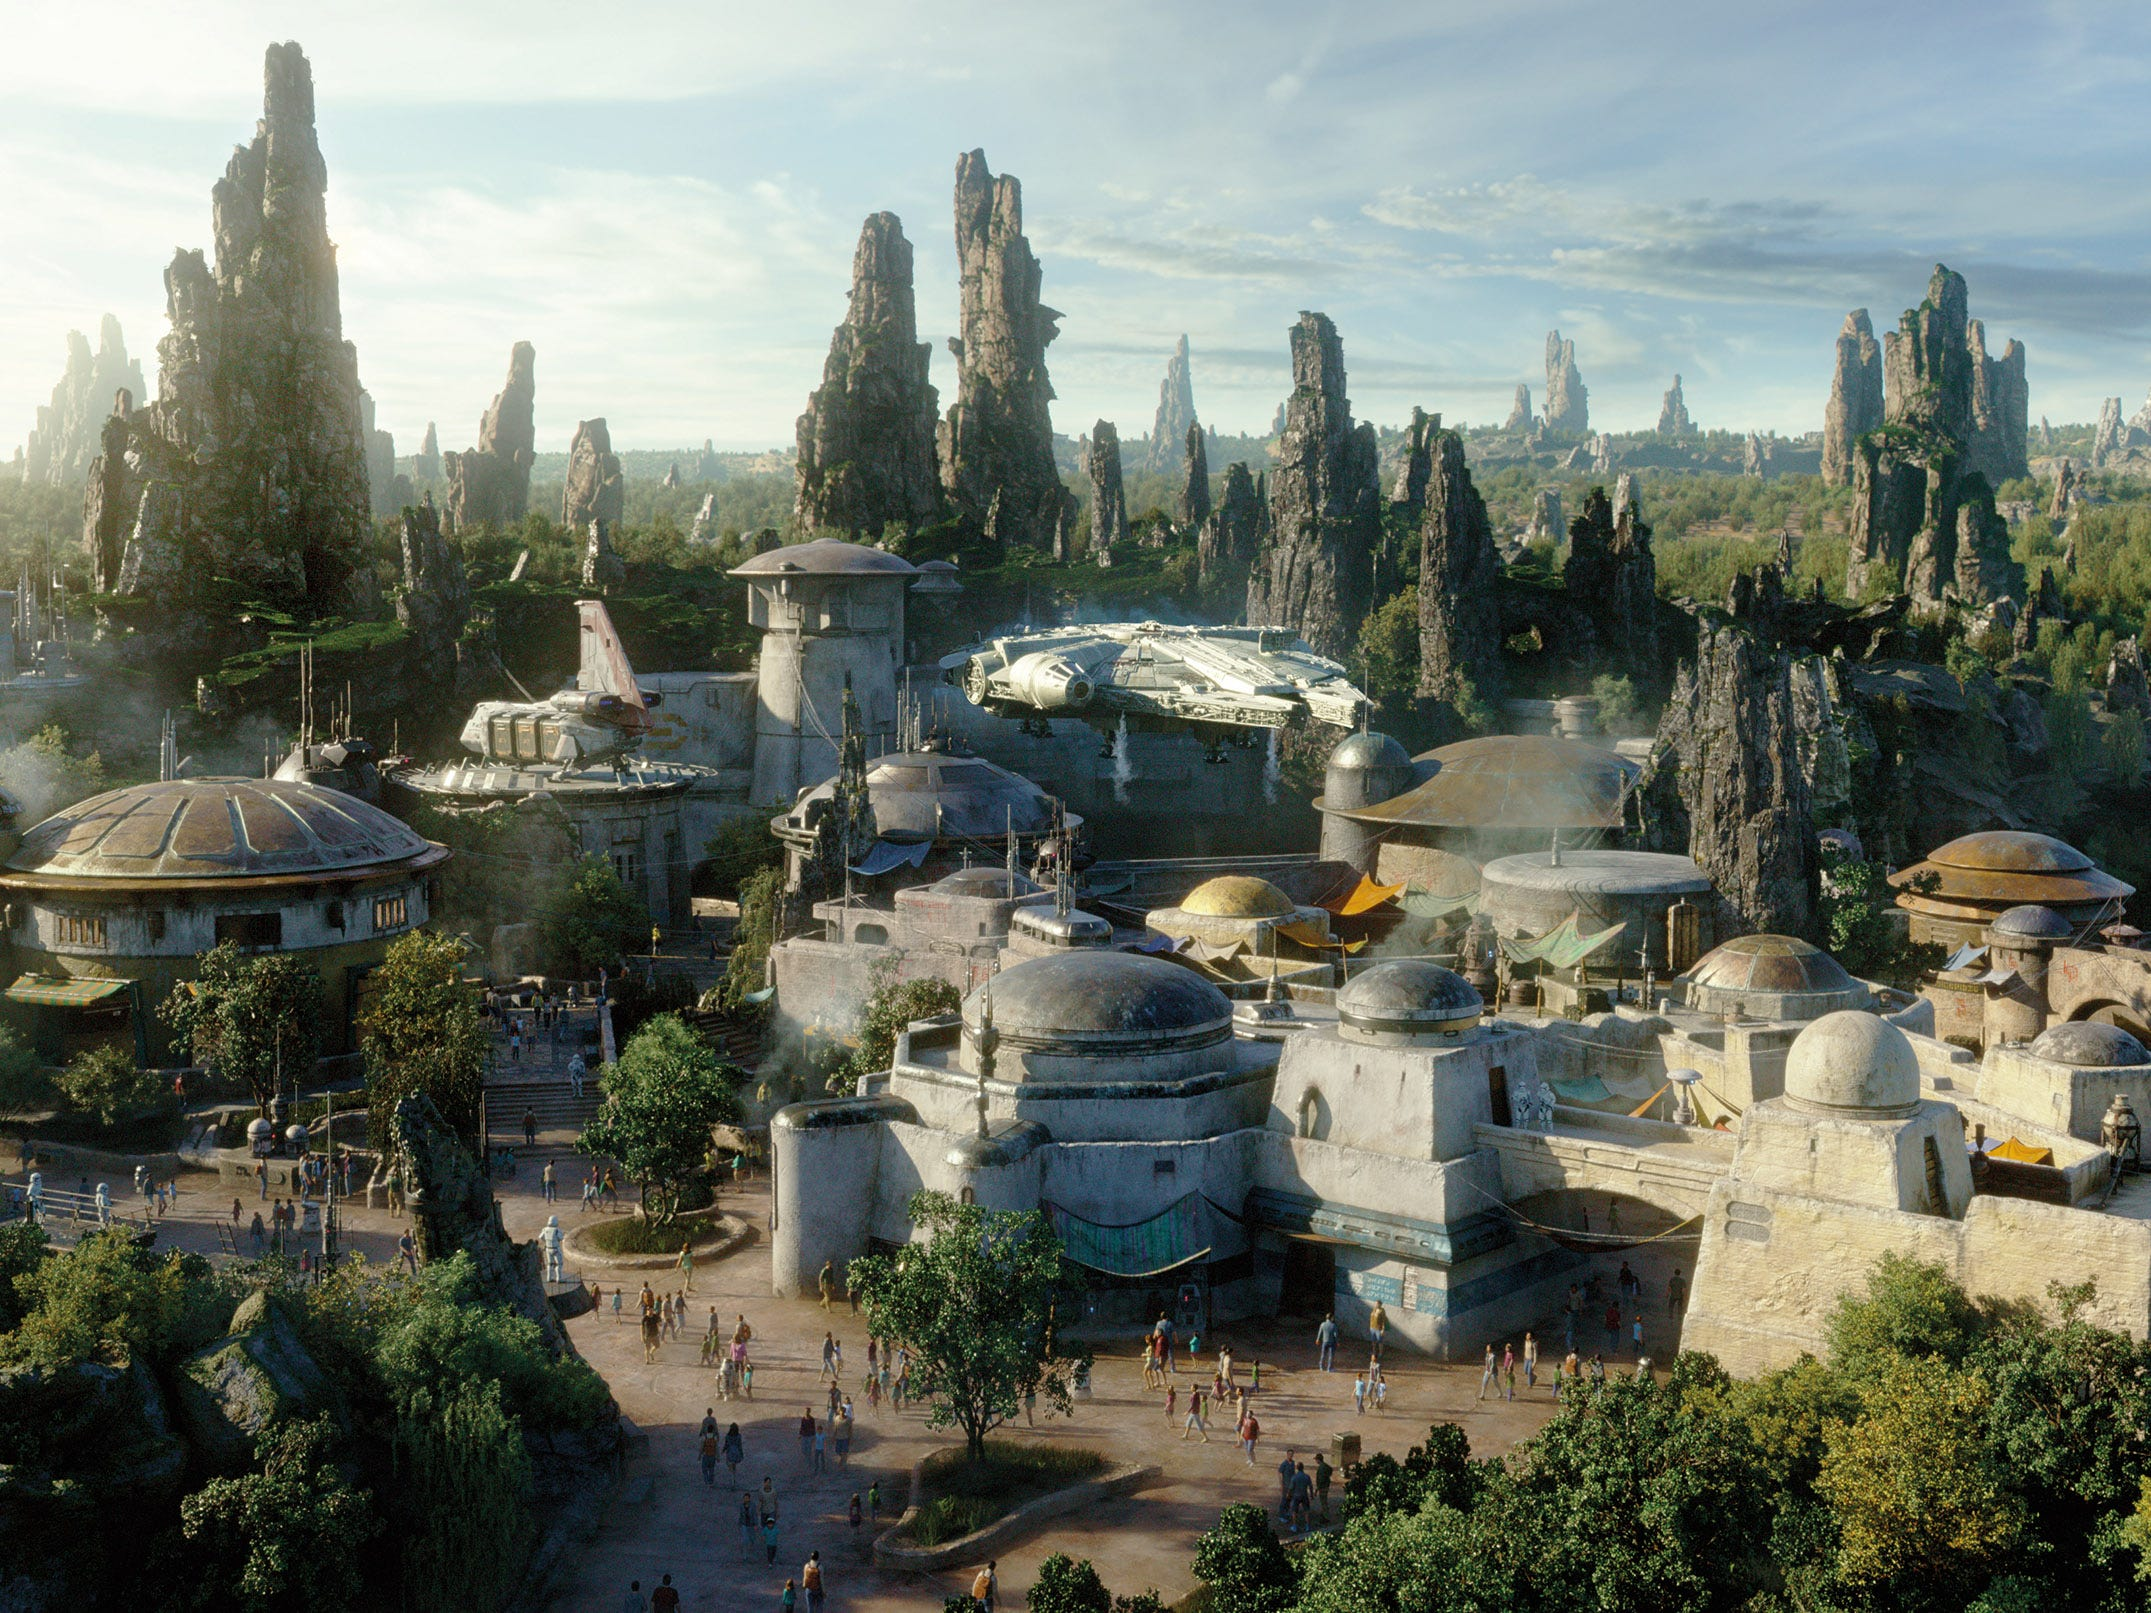 Star Wars: Galaxy's Edge opens May 31, 2019, at Disneyland and will include a number of eclectic restaurants and shops selling otherworldly goods.